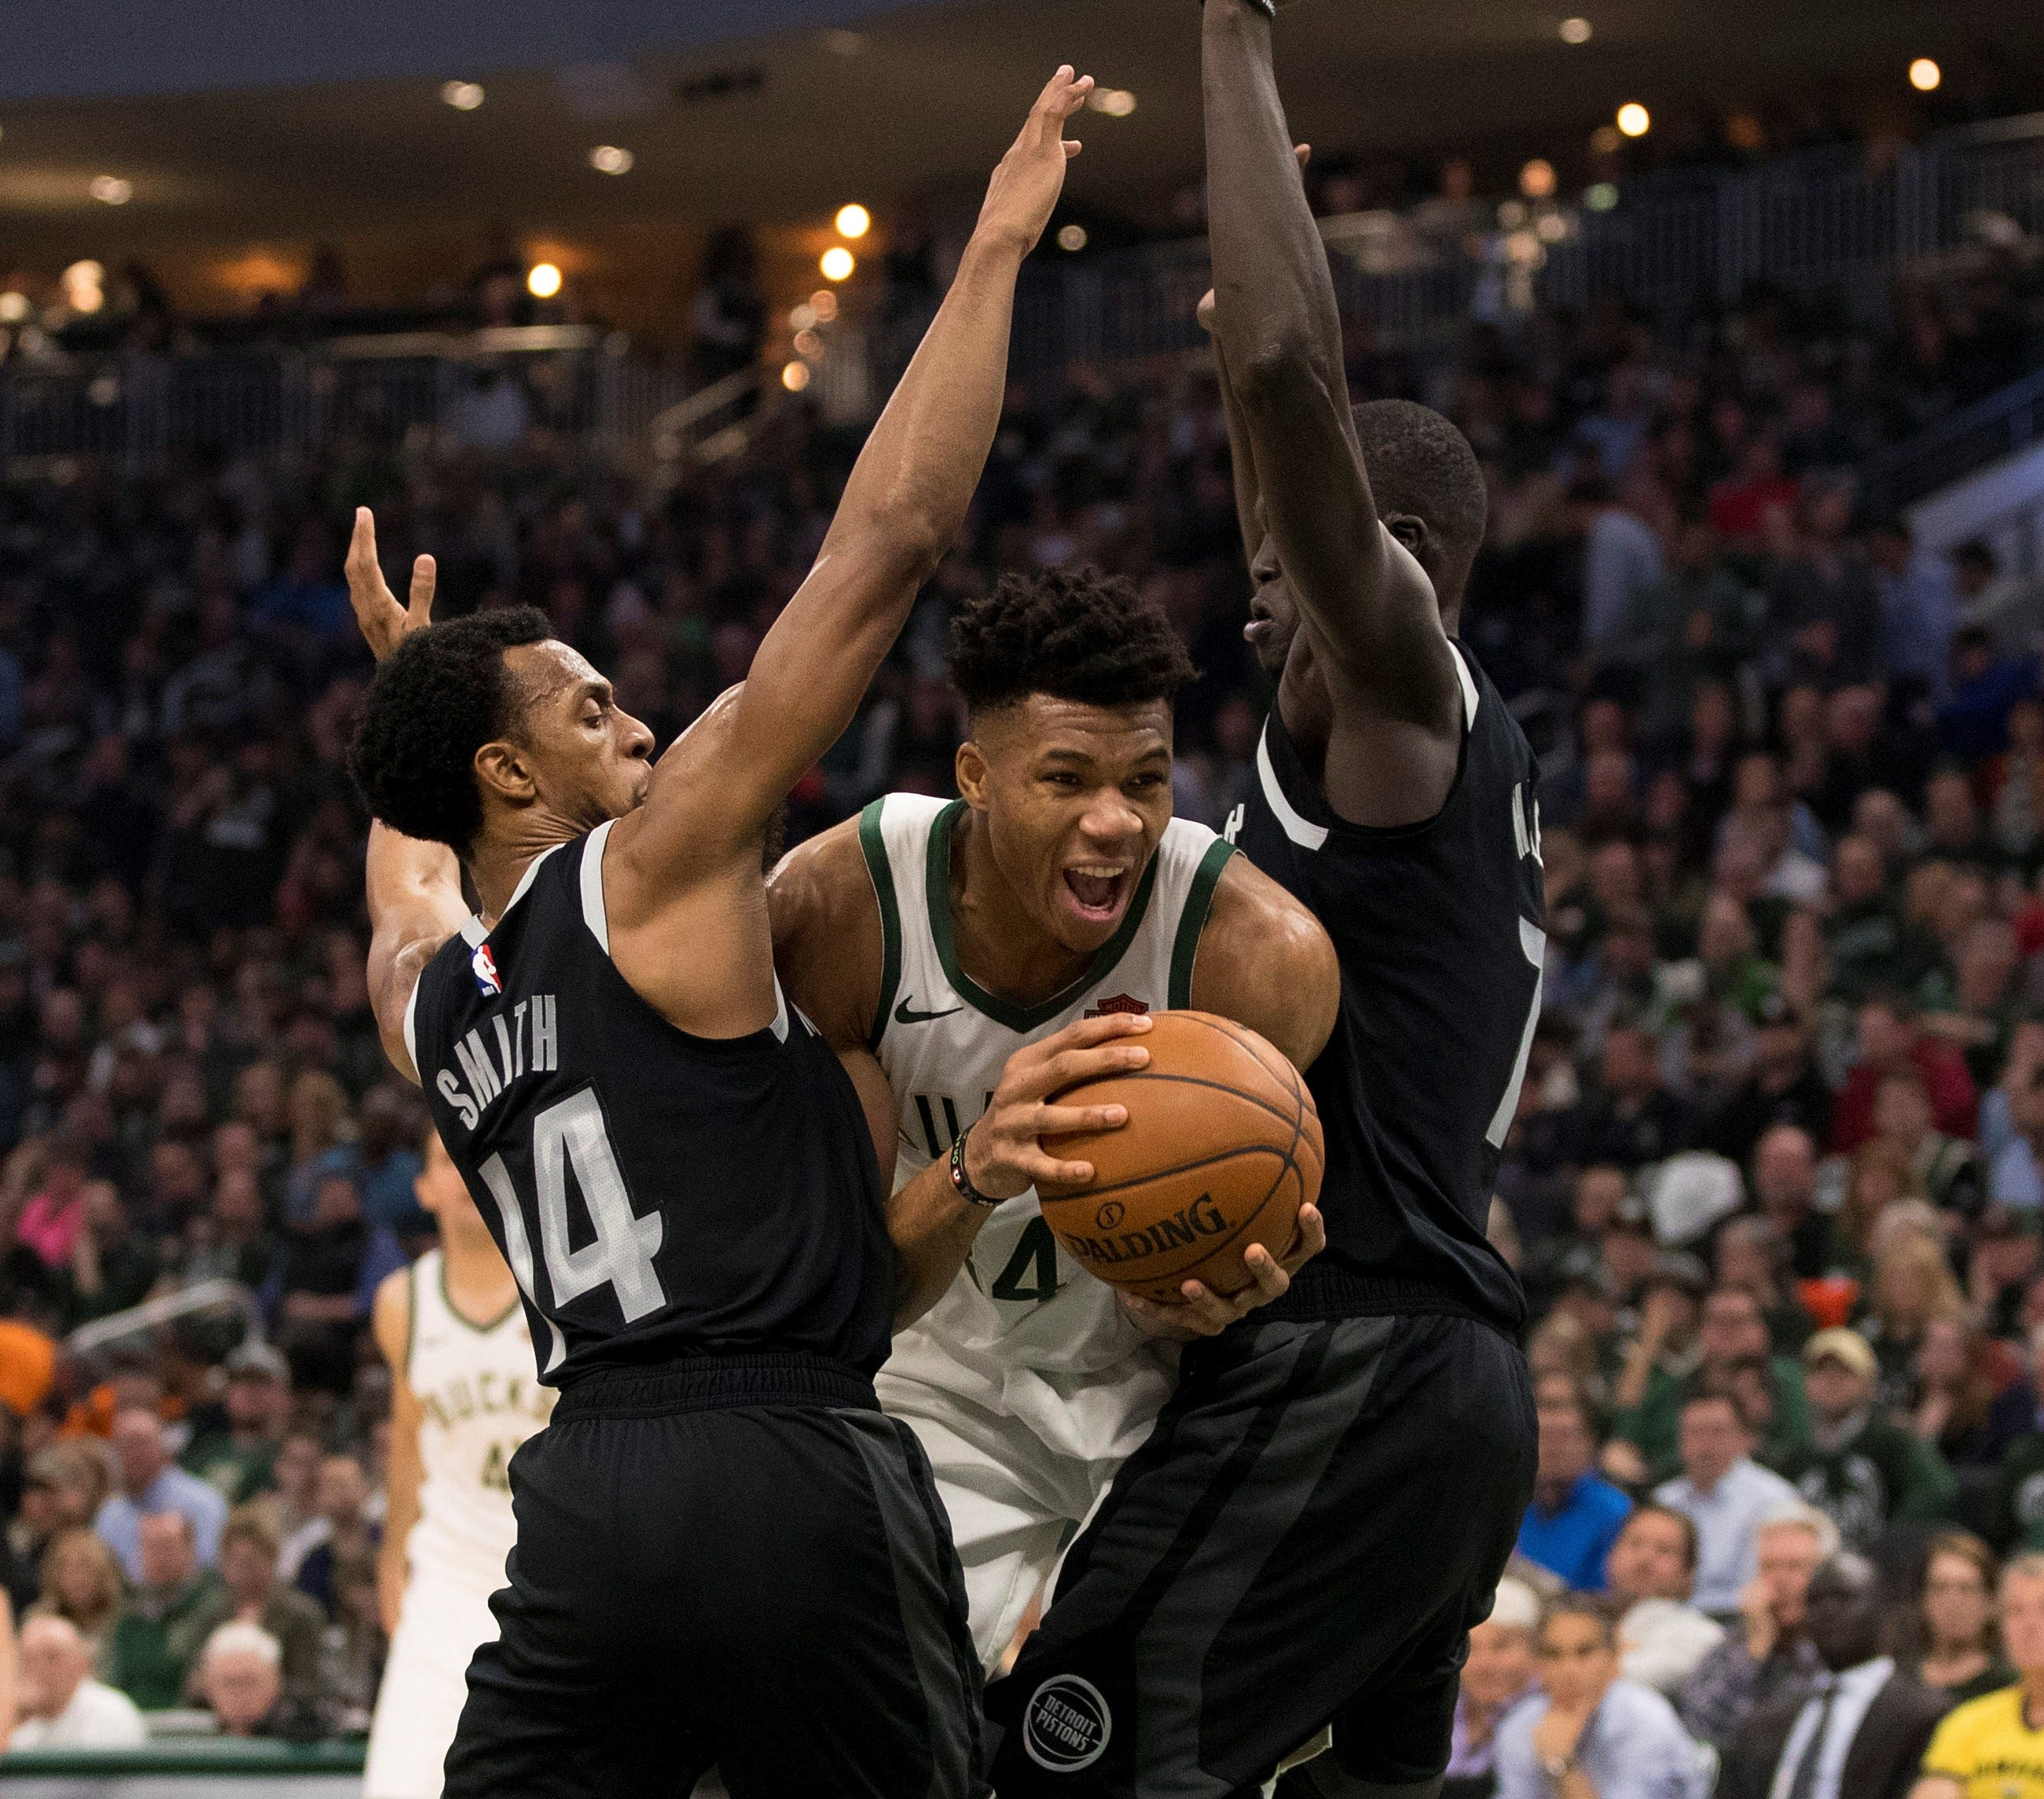 Is going all-out on both ends of the court taking a toll on Giannis Antetokounmpo?